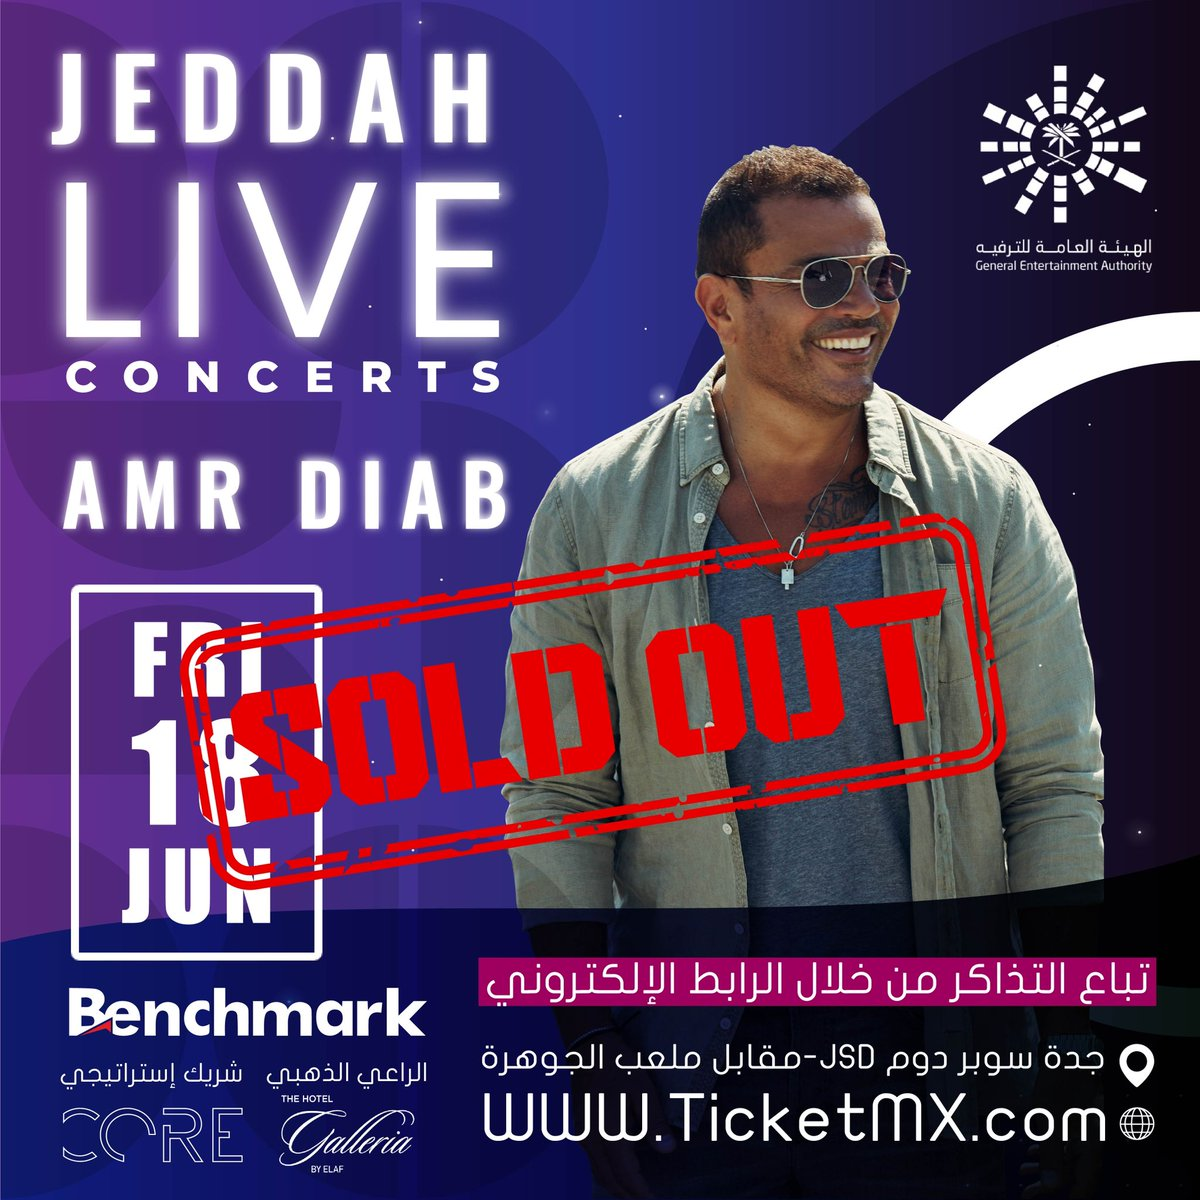 #Jeddah, see you all next Friday 🙌🏼 https://t.co/Wzc2rU7T38